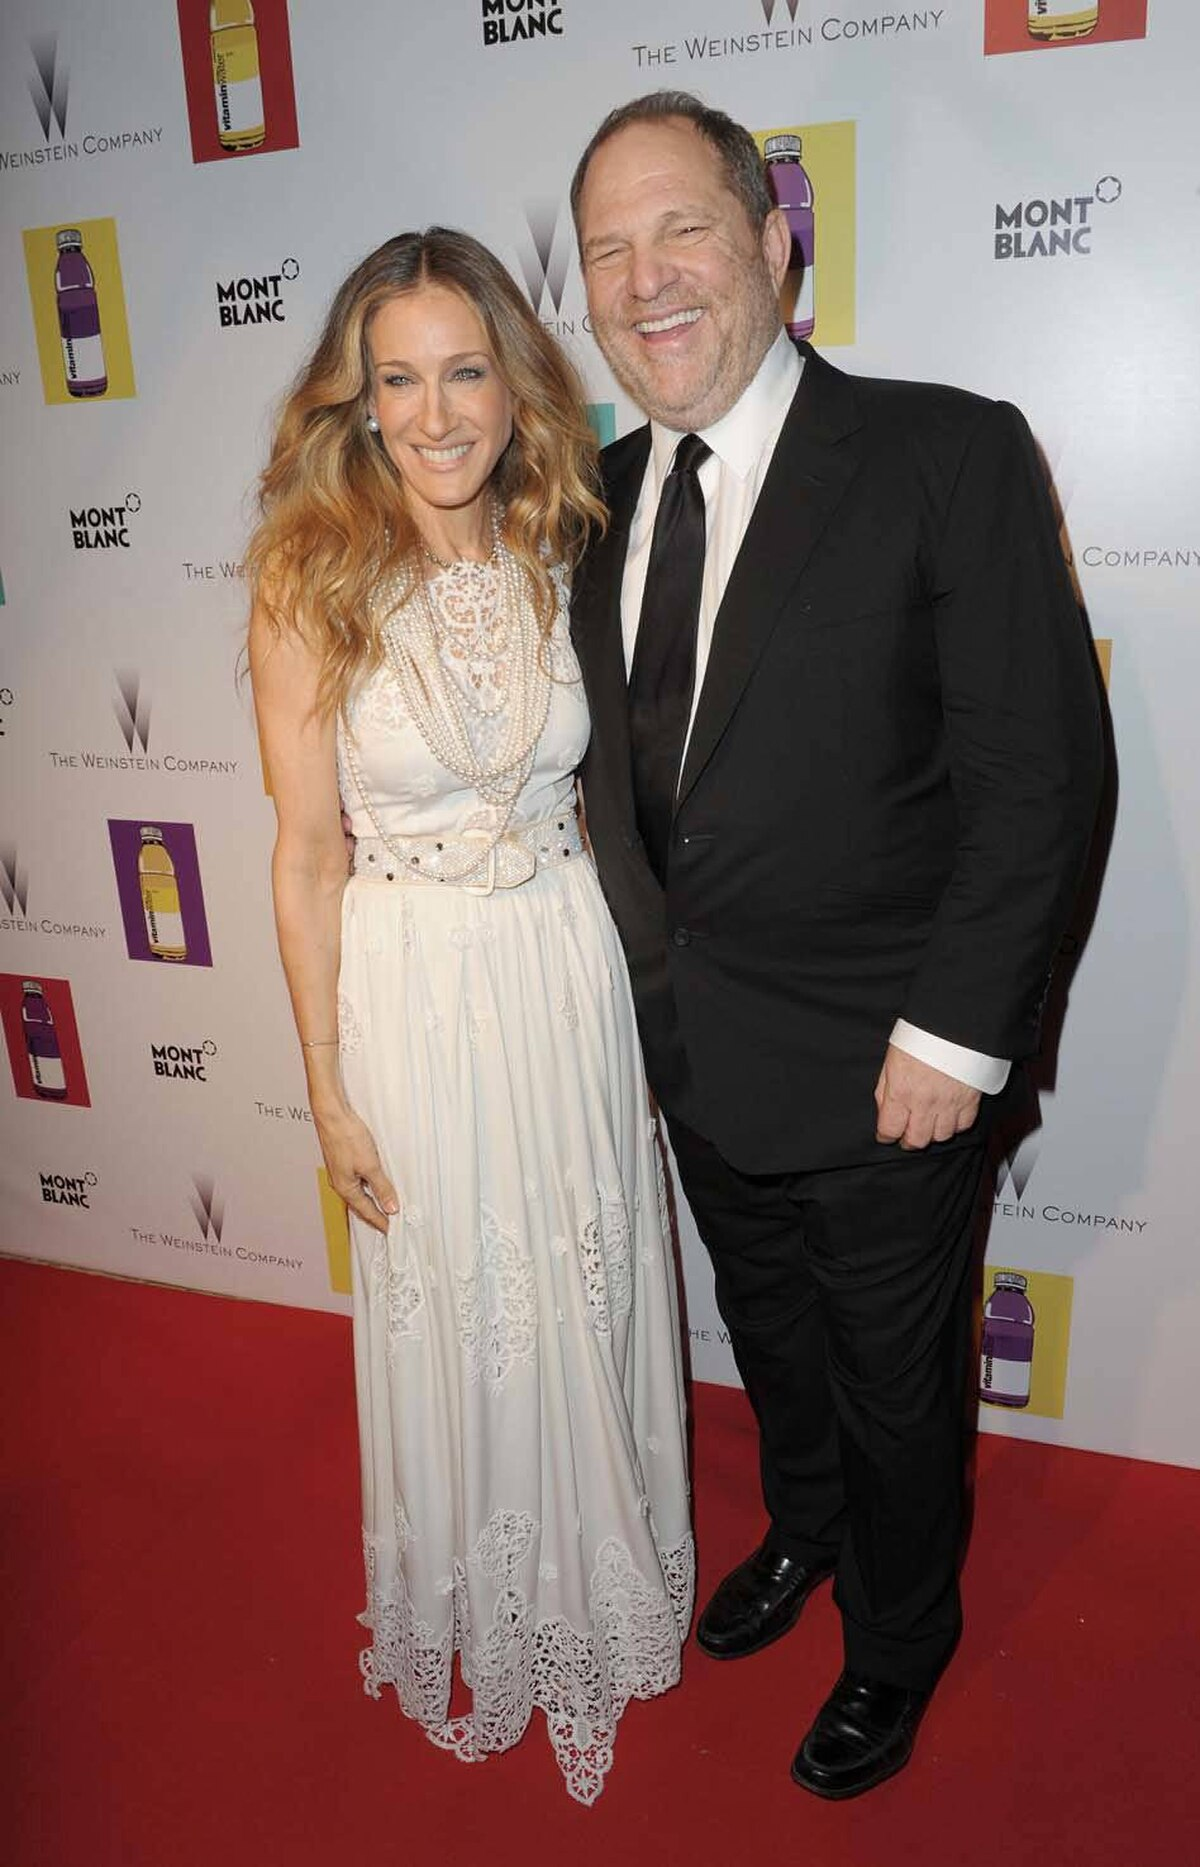 Sarah Jessica Parker and Harvey Weinstein attend the Weinstein Company VIP Press Event at the Martinez Hotel during the Cannes Film Festival on Friday.